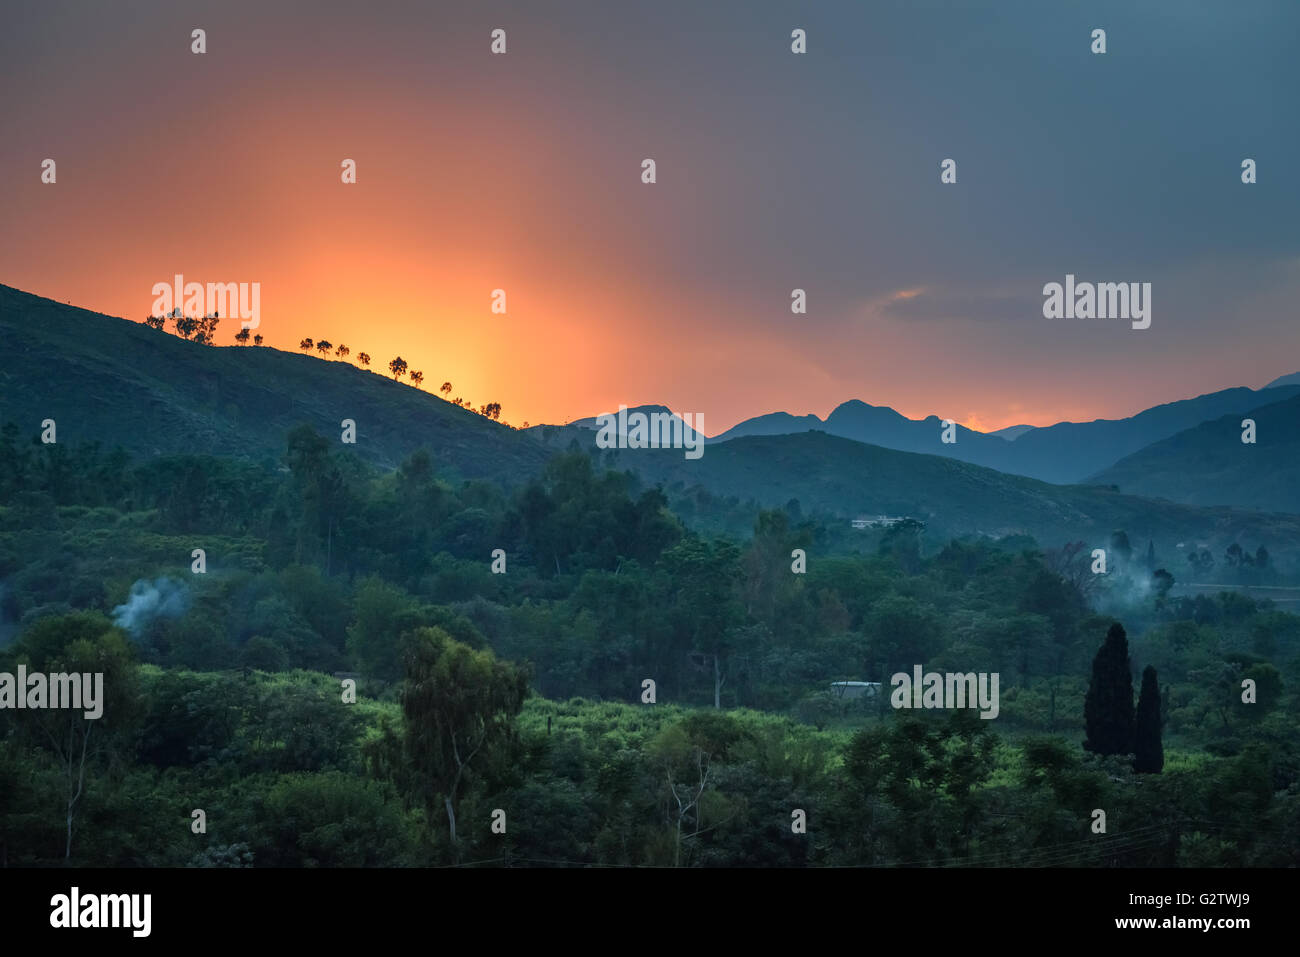 View of Swat valley at sunset, Pakistan. - Stock Image